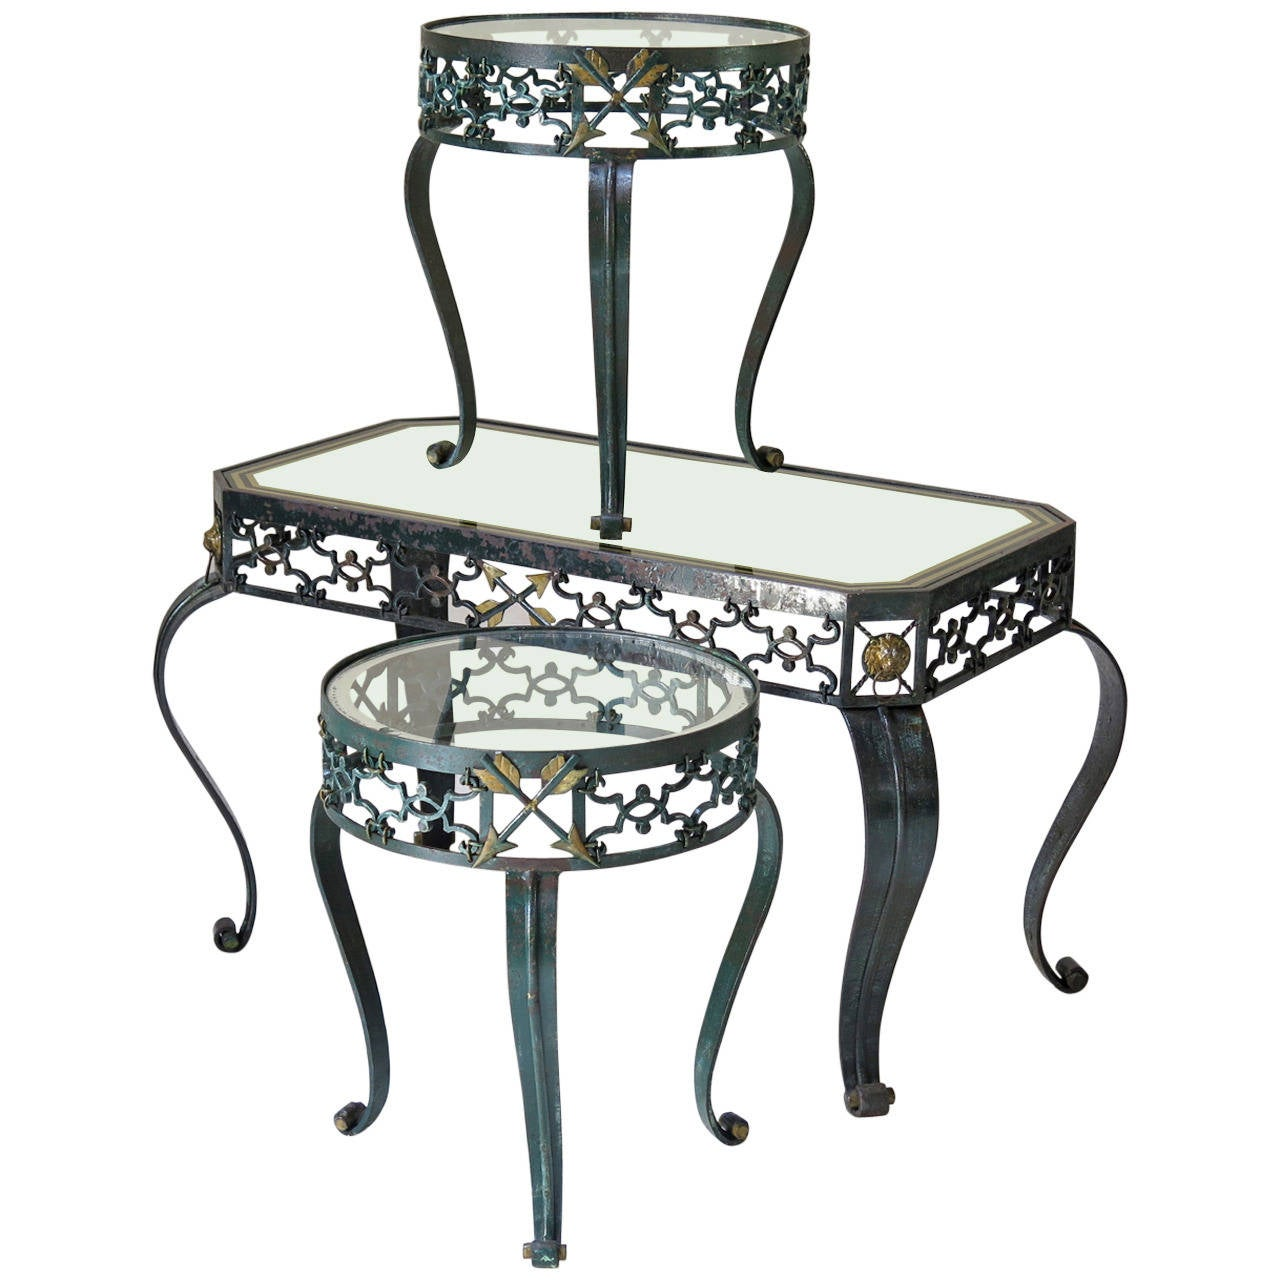 Charmant Trio Of Art Deco Wrought Iron Coffee Tables, France, 1940s For Sale